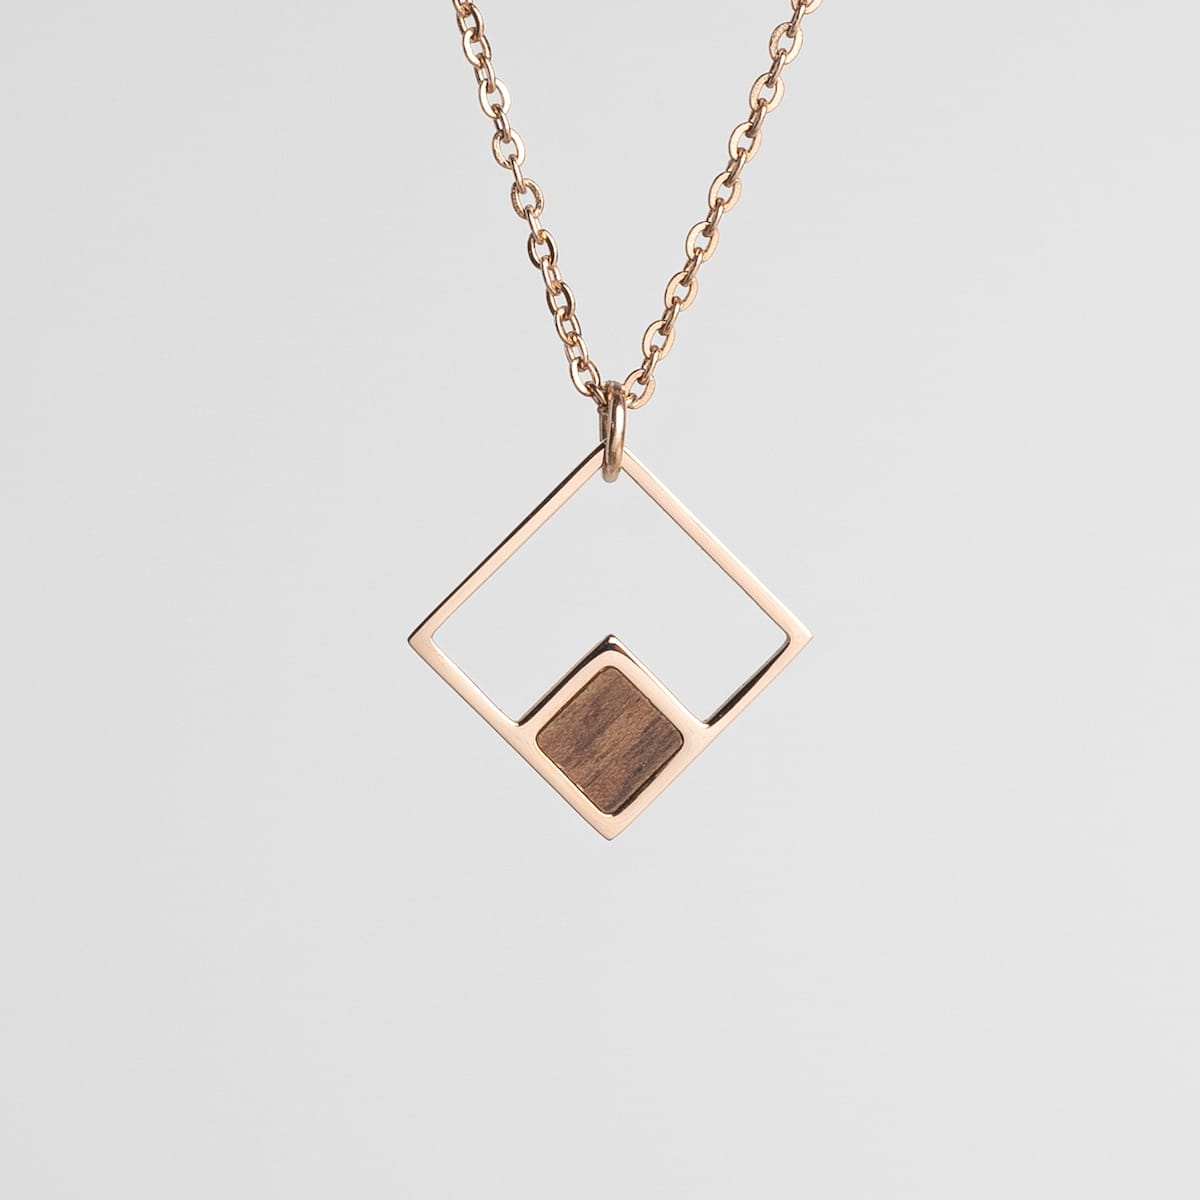 Geometric Necklace $65